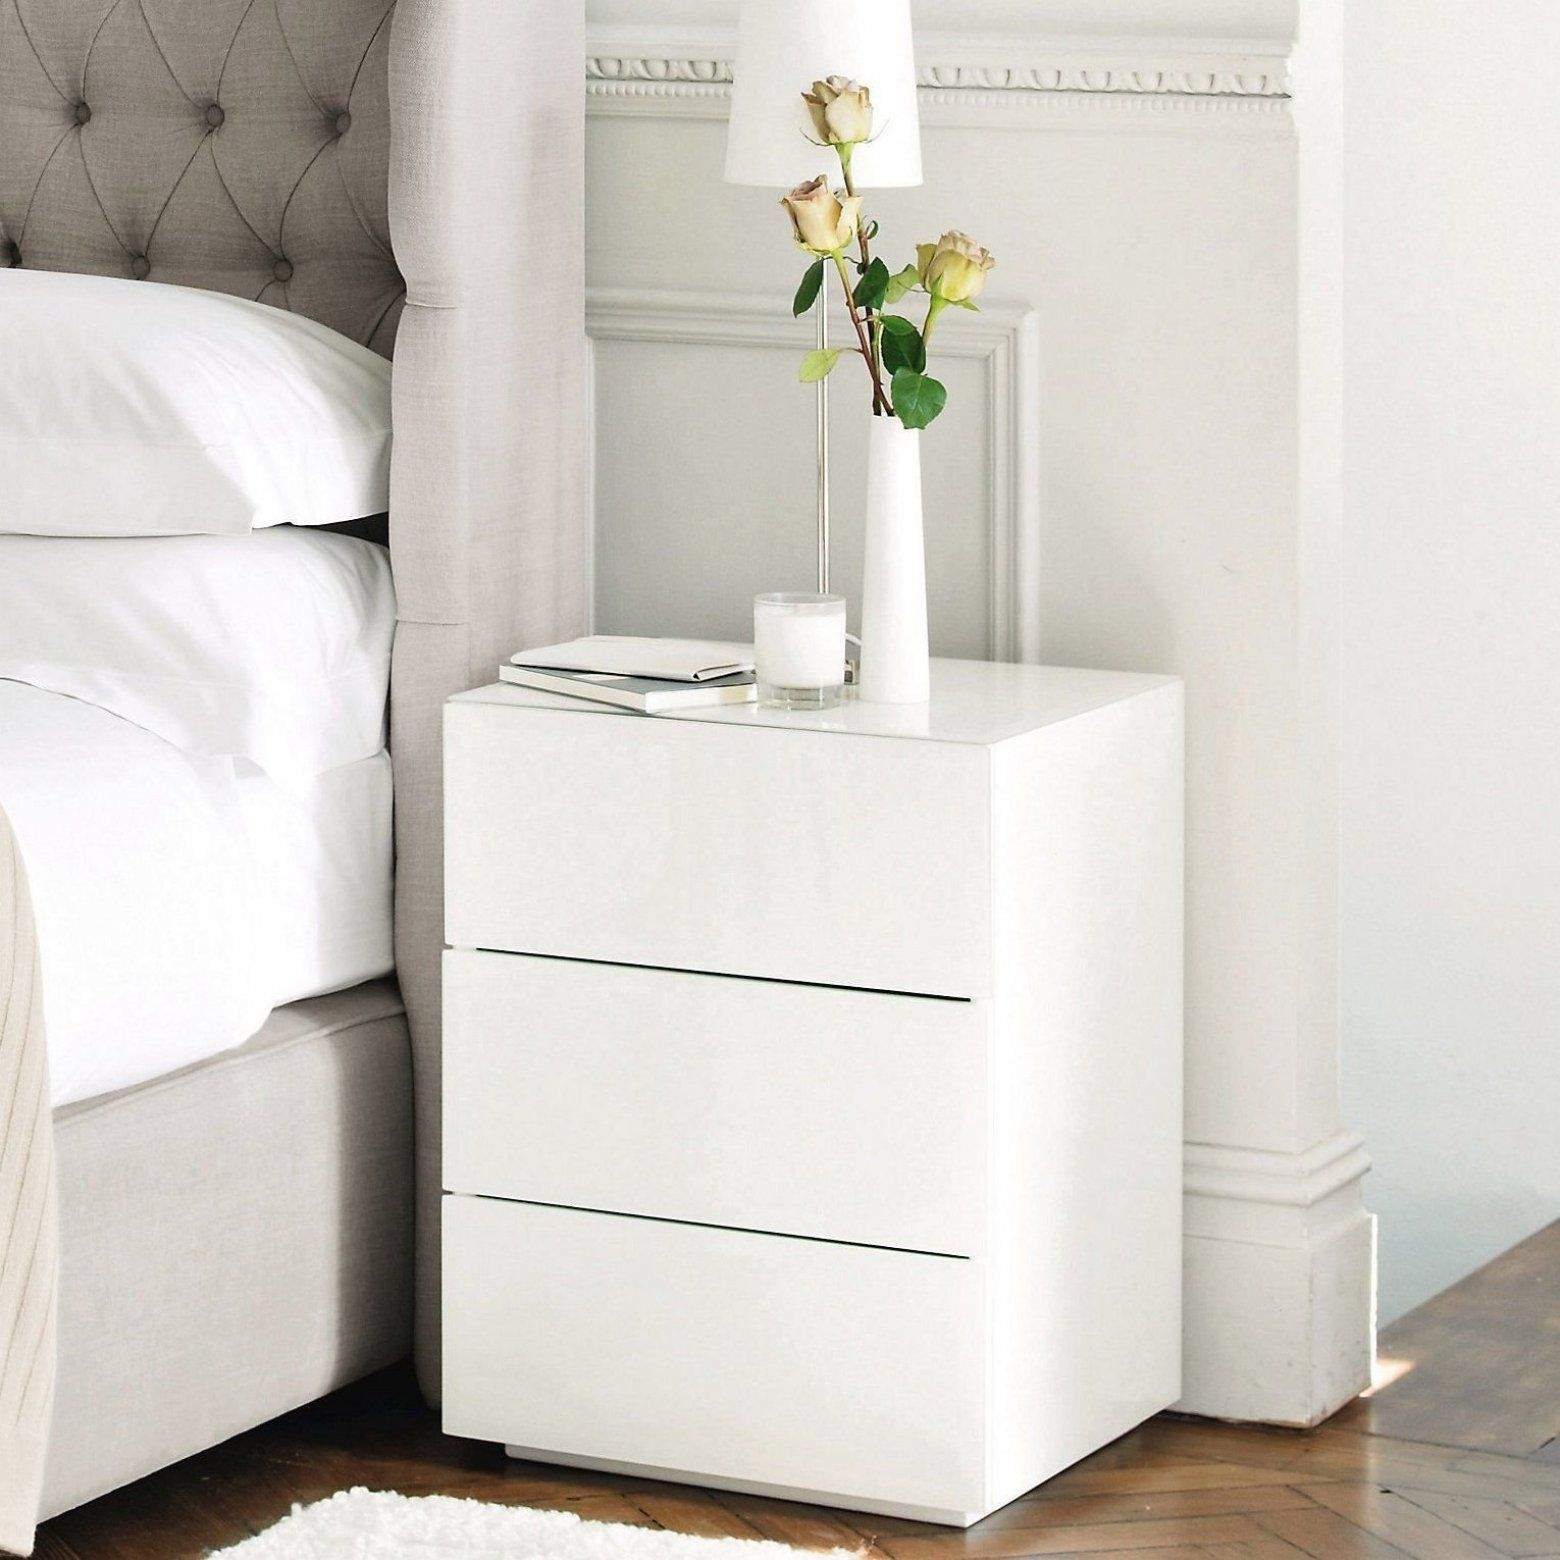 Carlton Glass 3 Drawer Bedside Table Bedroom Furniture Furniture Home The White Compan In 2020 White Bedside Table Bedroom Bedside Table Stylish Bedside Tables